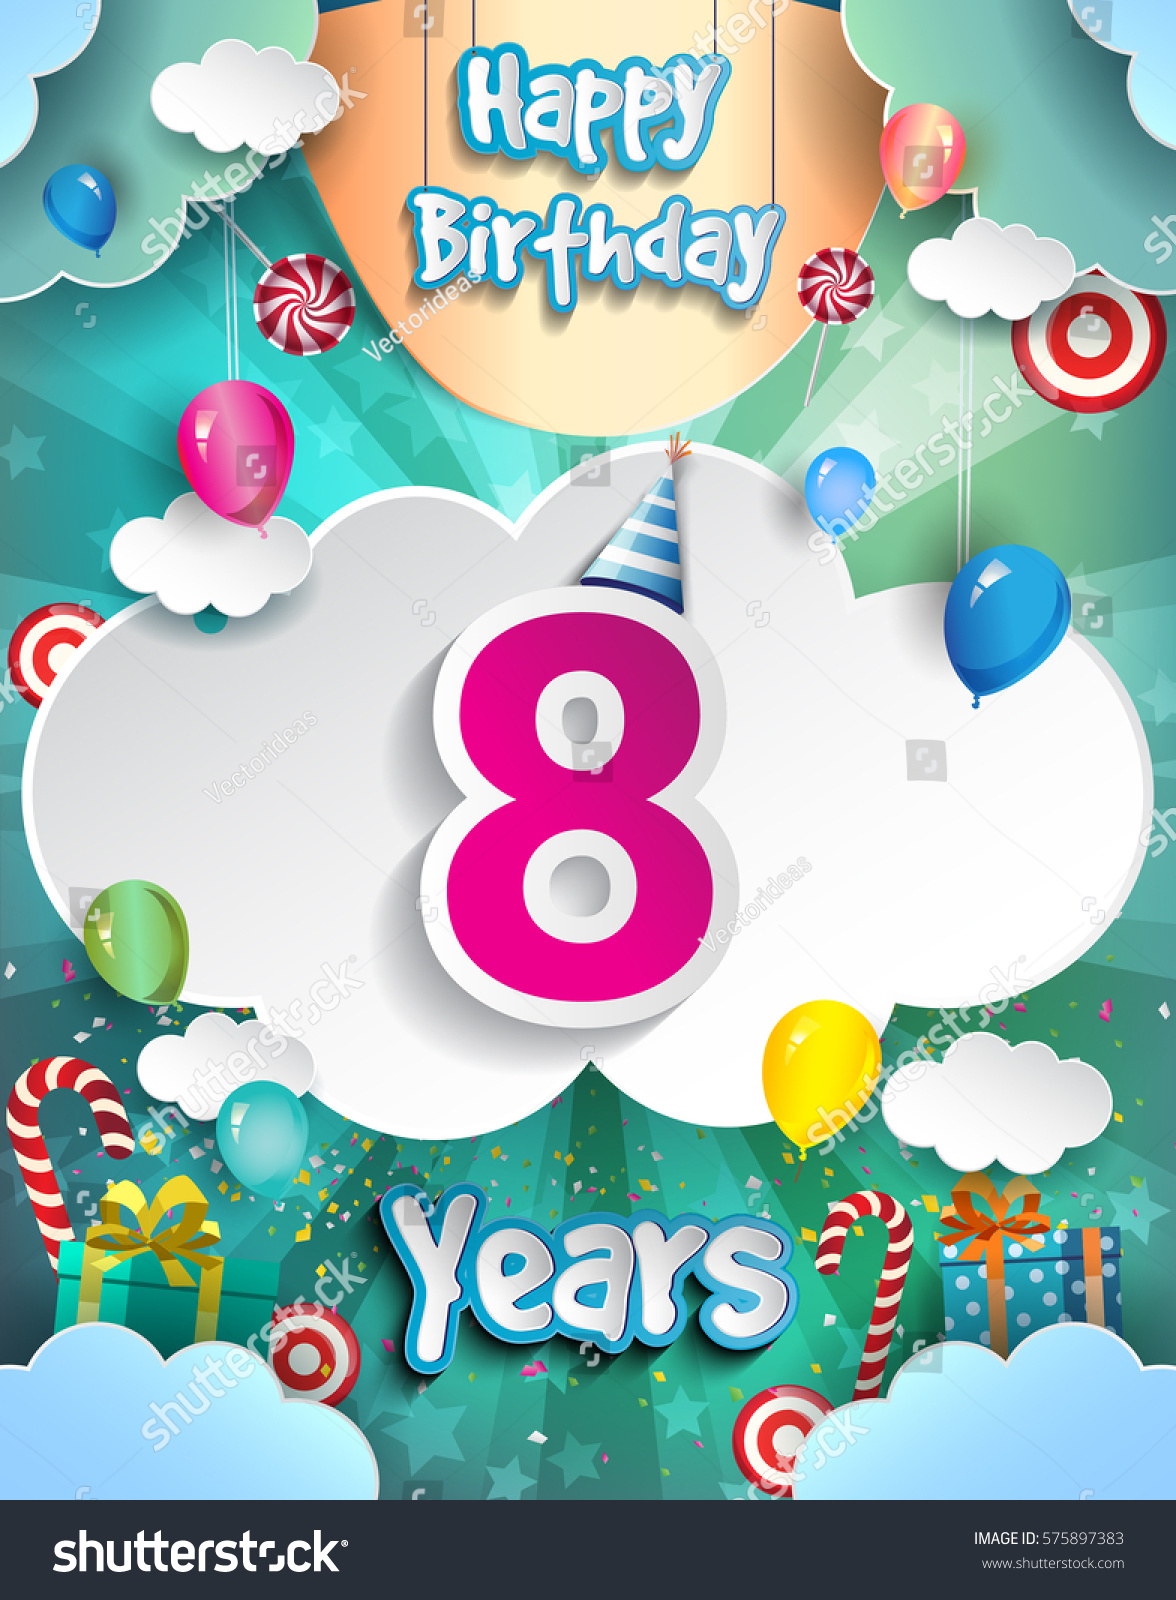 8 Years Birthday Design For Greeting Cards And Poster With Clouds Gift Box